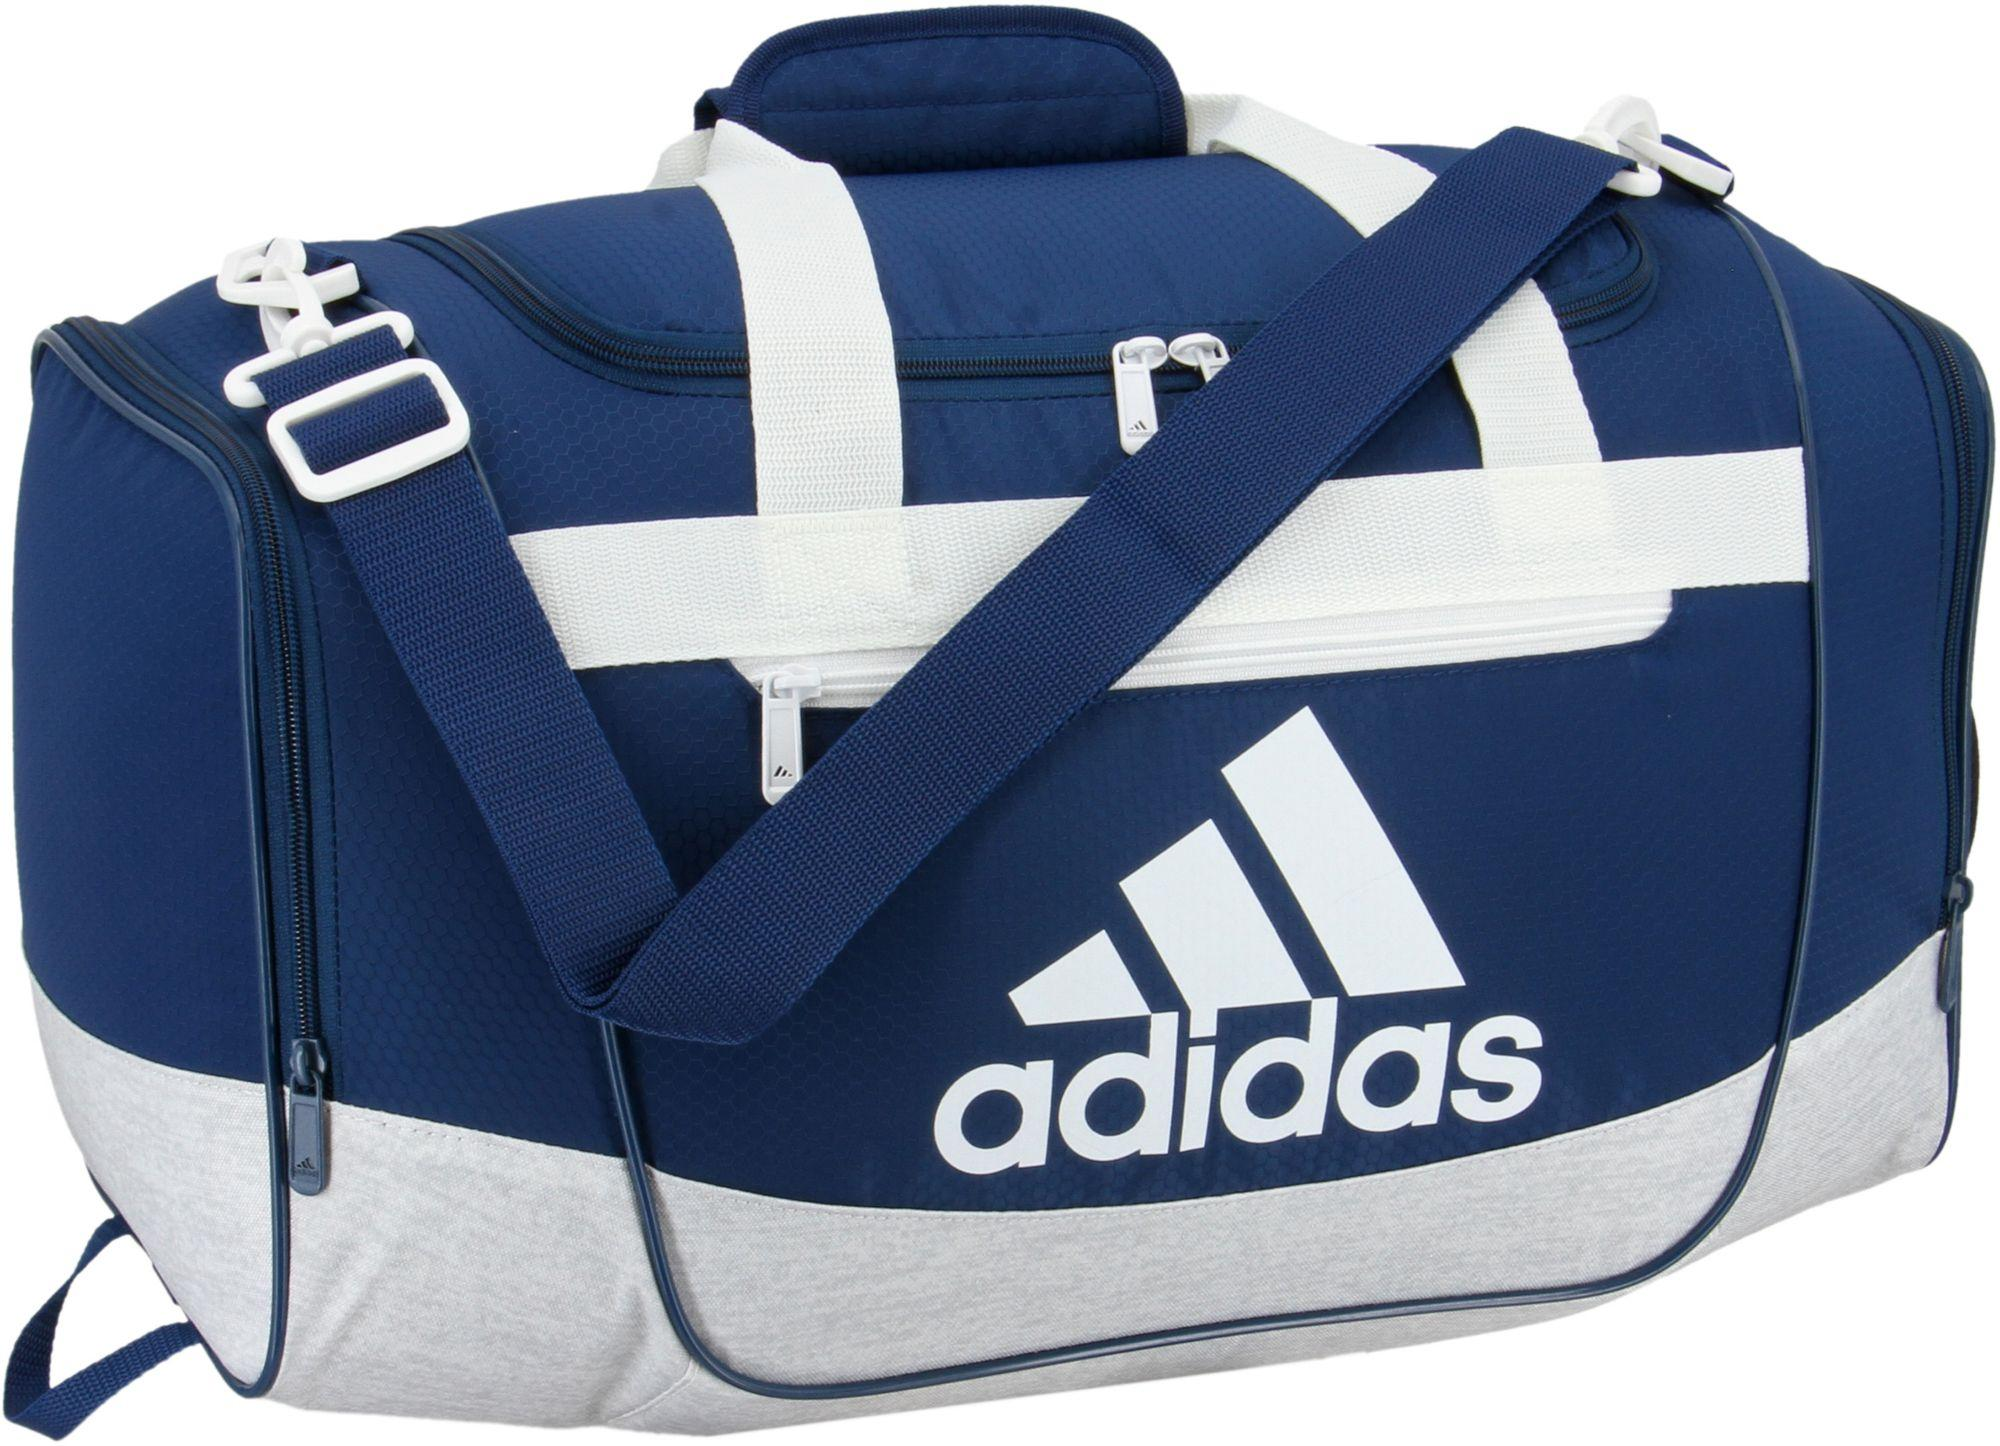 34460b8124 Lyst - adidas Defender Iii Small Duffle Bag in Blue for Men